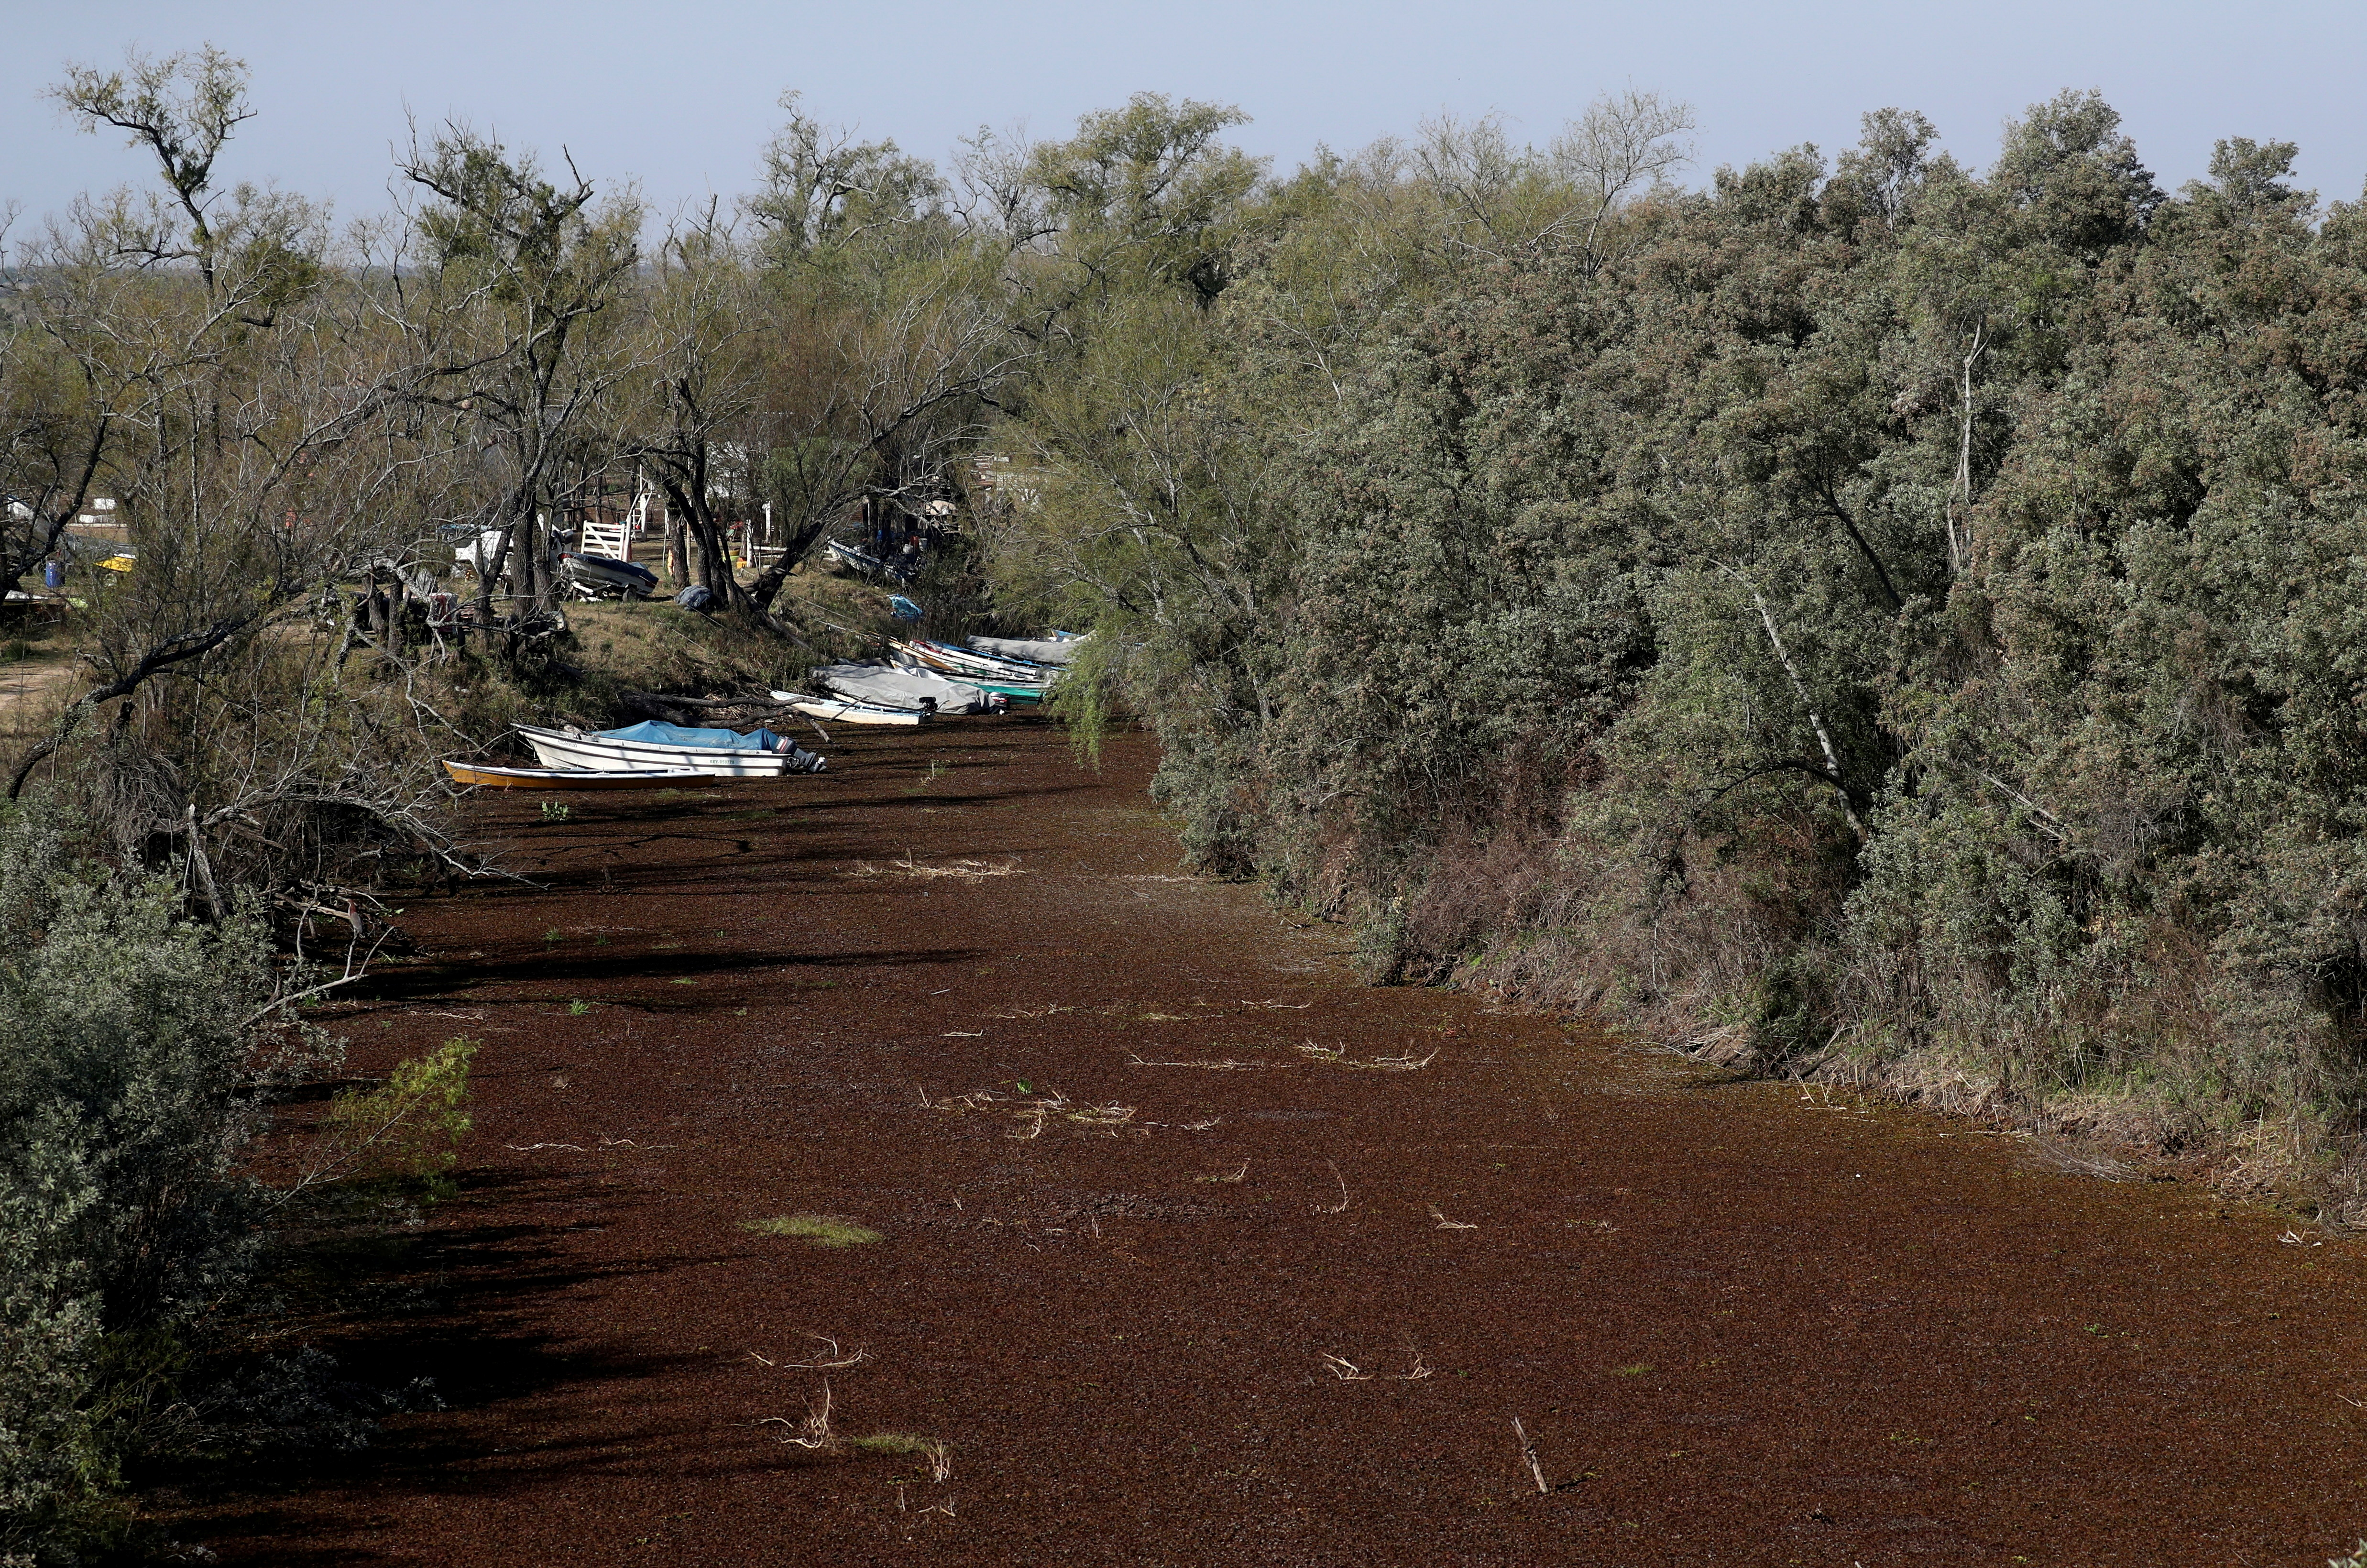 Boats are seen stranded in a dried out wetland on the shore of the Parana River, in Rosario, Argentina July 8, 2021. The lack of rain in Brazil, where the river originates, has brought water levels down in Argentina, forcing cargo ships to reduce the amount of grains that are loaded for export.  REUTERS/Agustin Marcarian